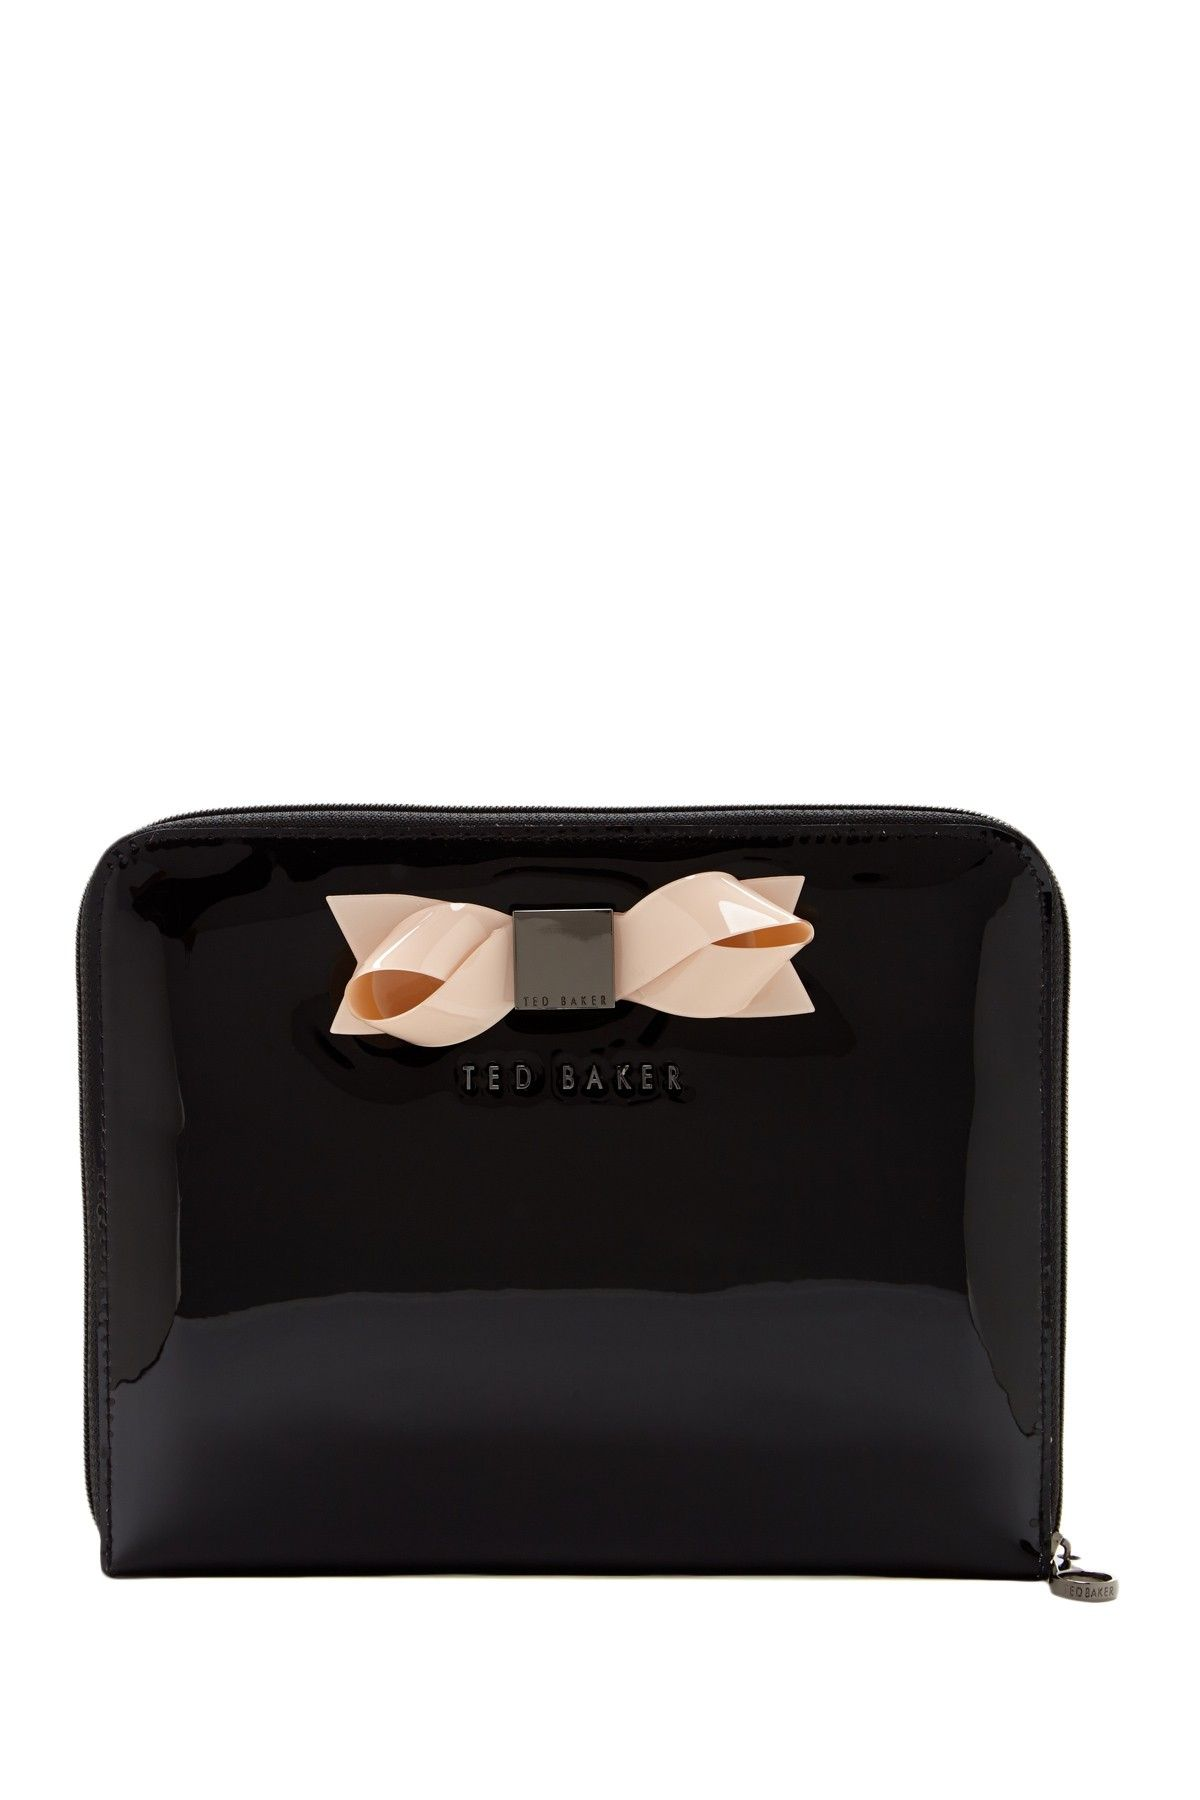 TED BAKER : SALE :Tabcon Tablet Case: LOVE IT